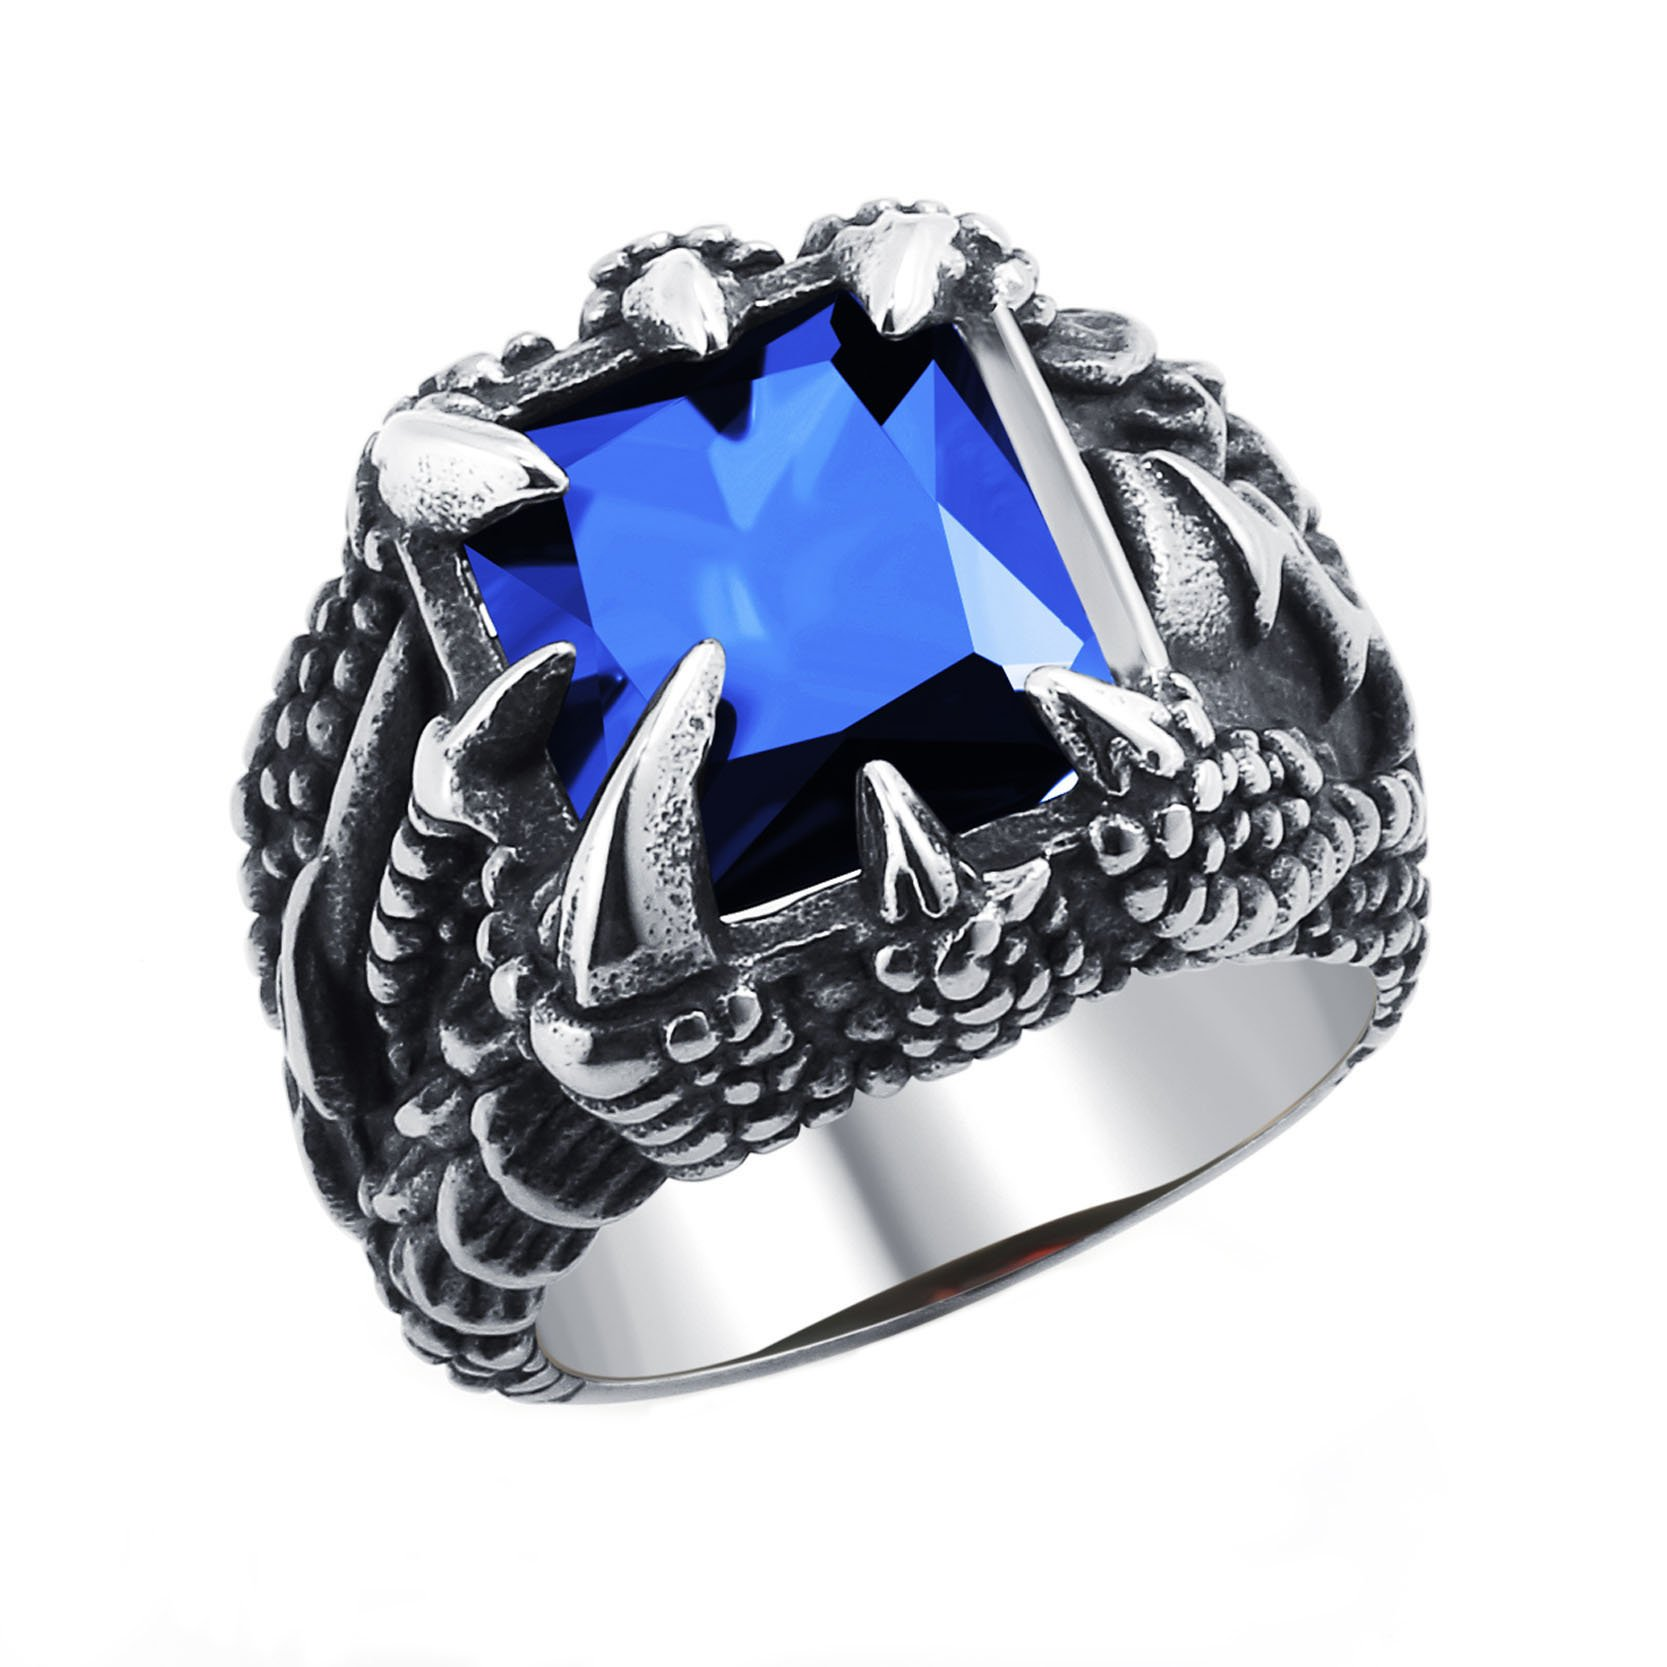 Dragon Claw Ring Dark Blue Crytsal Stainless Steel Gothic Ring for Boys Birthday Gift Size 10